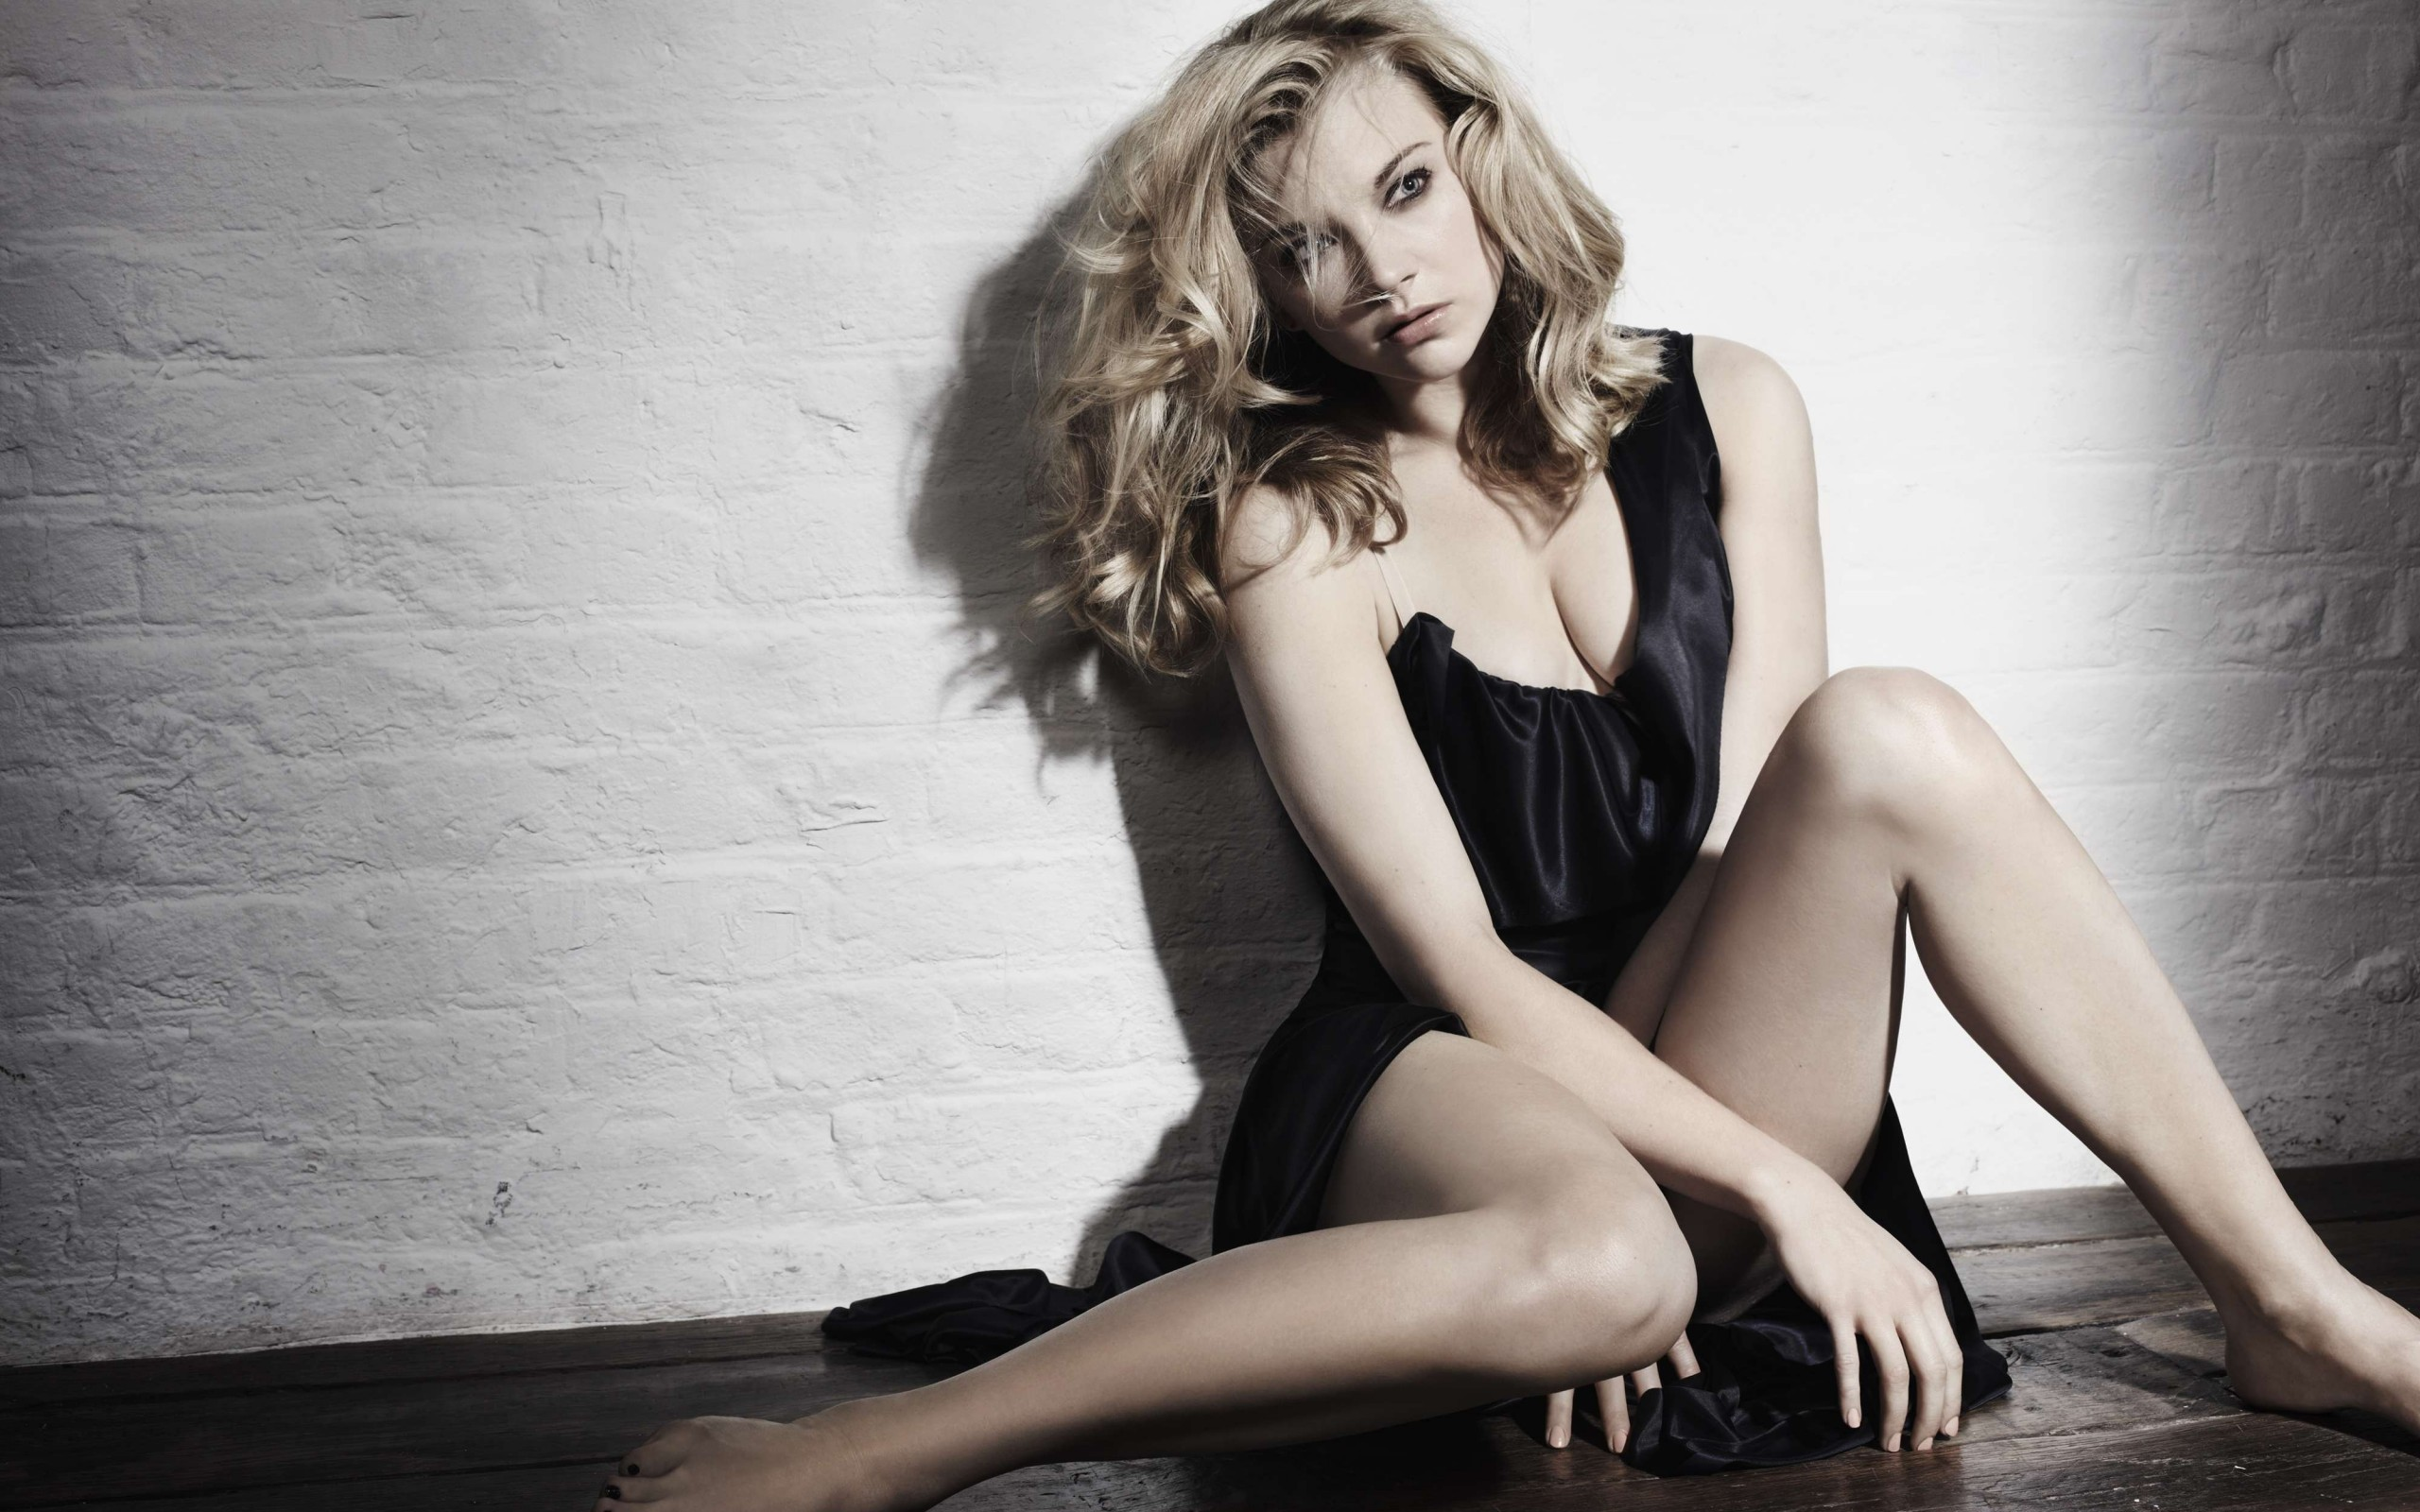 https://i2.wp.com/hdqwalls.com/wallpapers/natalie-dormer-black-dress-to.jpg